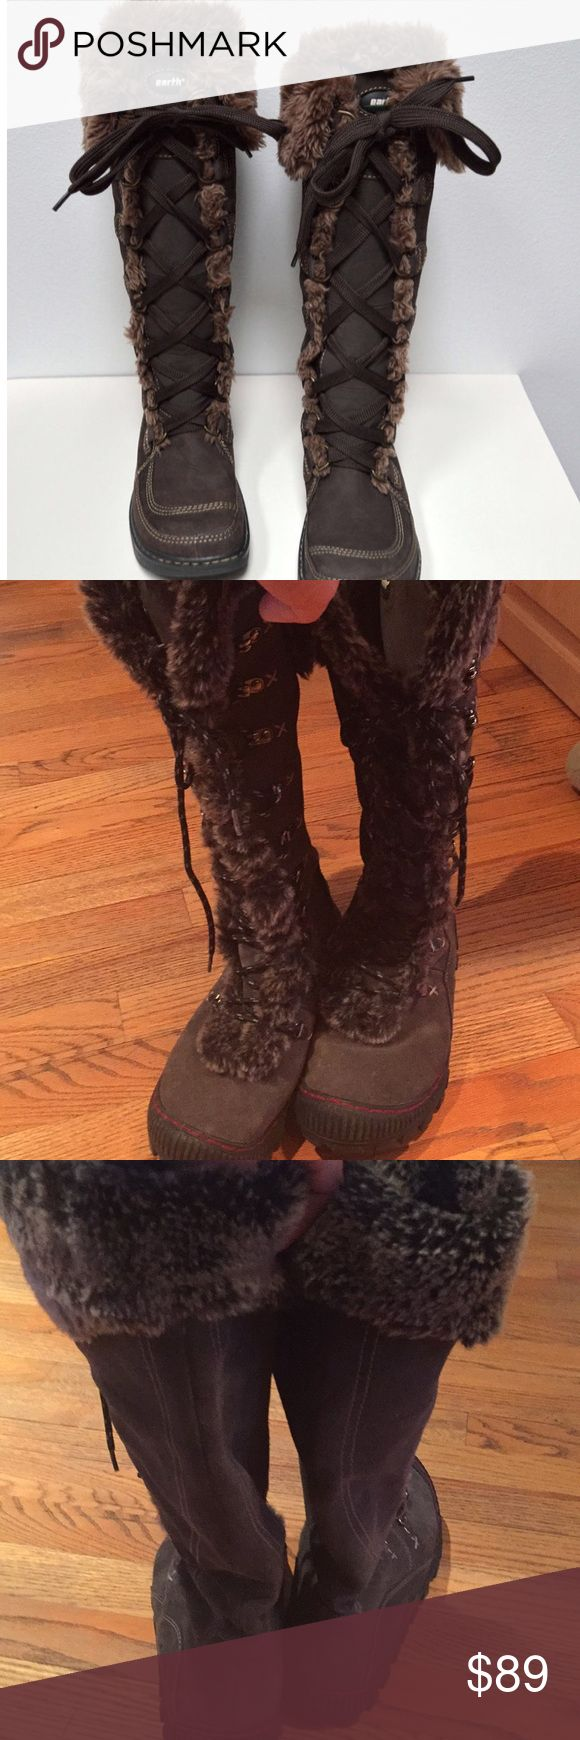 Like NWOT Earth Summit knee high lace up 7 boots Earth Summit Super warm amazing winter boots like new( warm 2x). Charcoal grey ( pic 3 better reflects color) exterior suede and fleece lined and upper faux fur accents! Wore 2x but too small. Originally $200, yours for a fraction! Earth Shoes Lace Up Boots